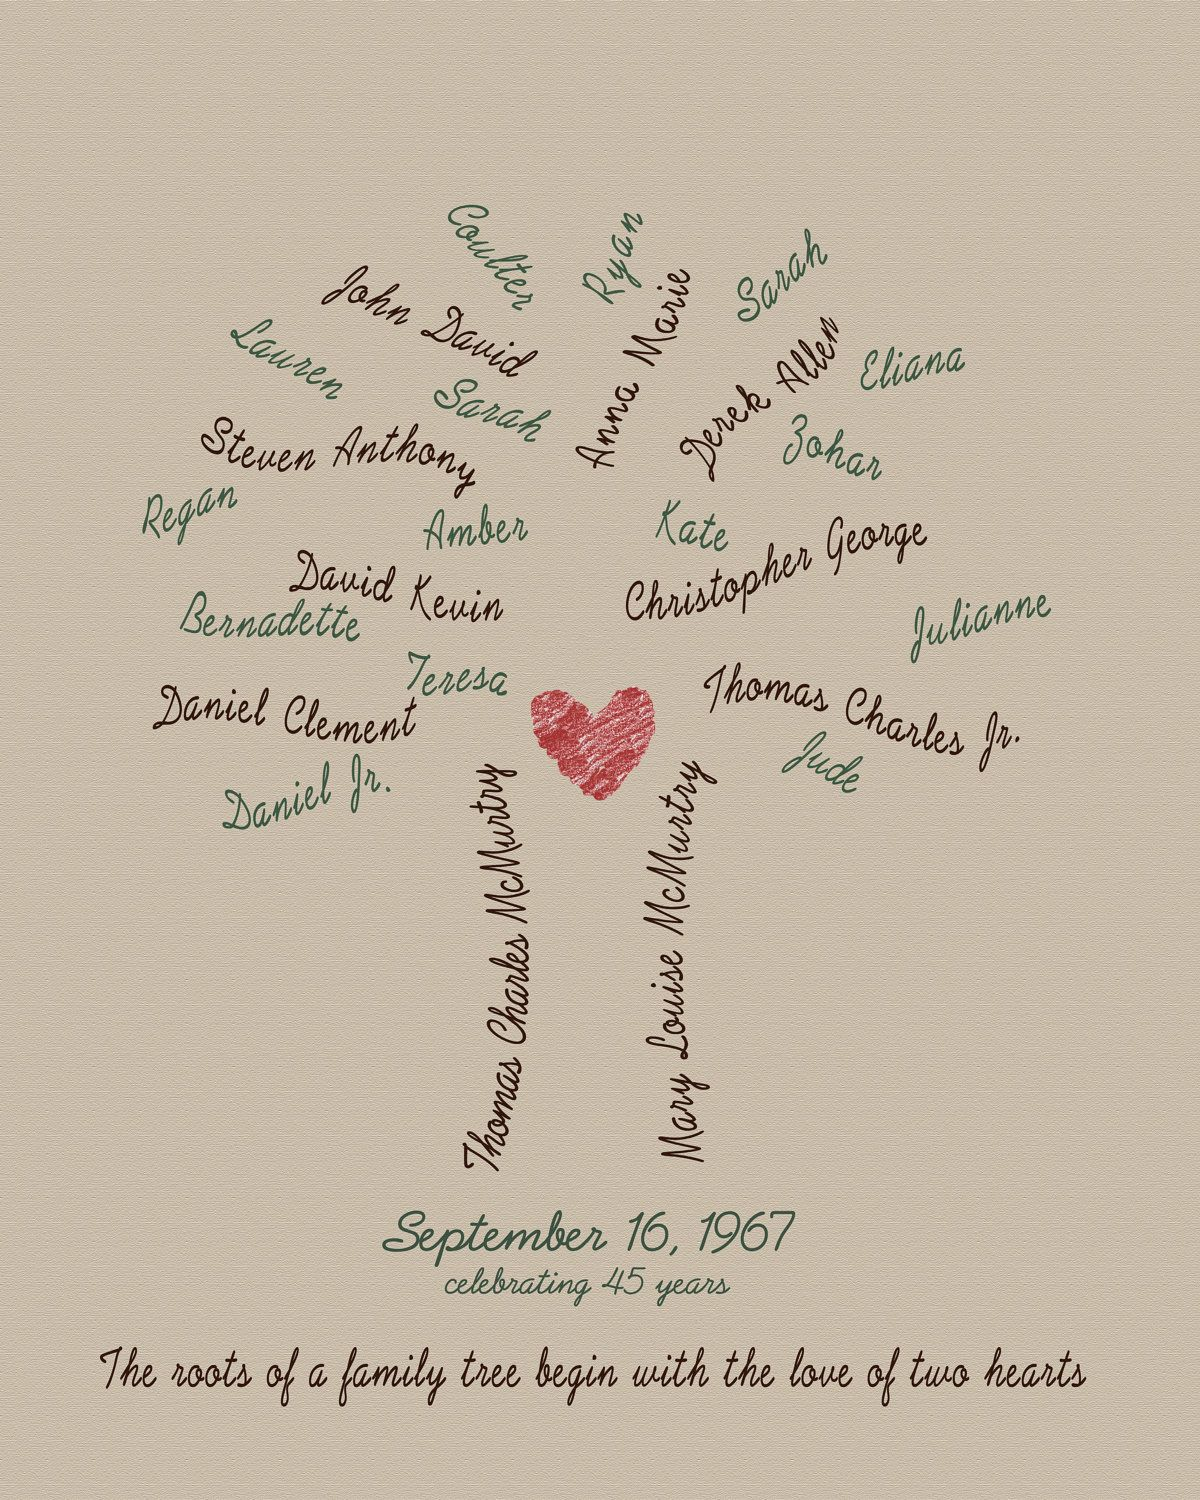 Wedding Gift Ideas For Family : Custom Family Tree, Anniversary Gift 11x14 Typography Art Typography ...